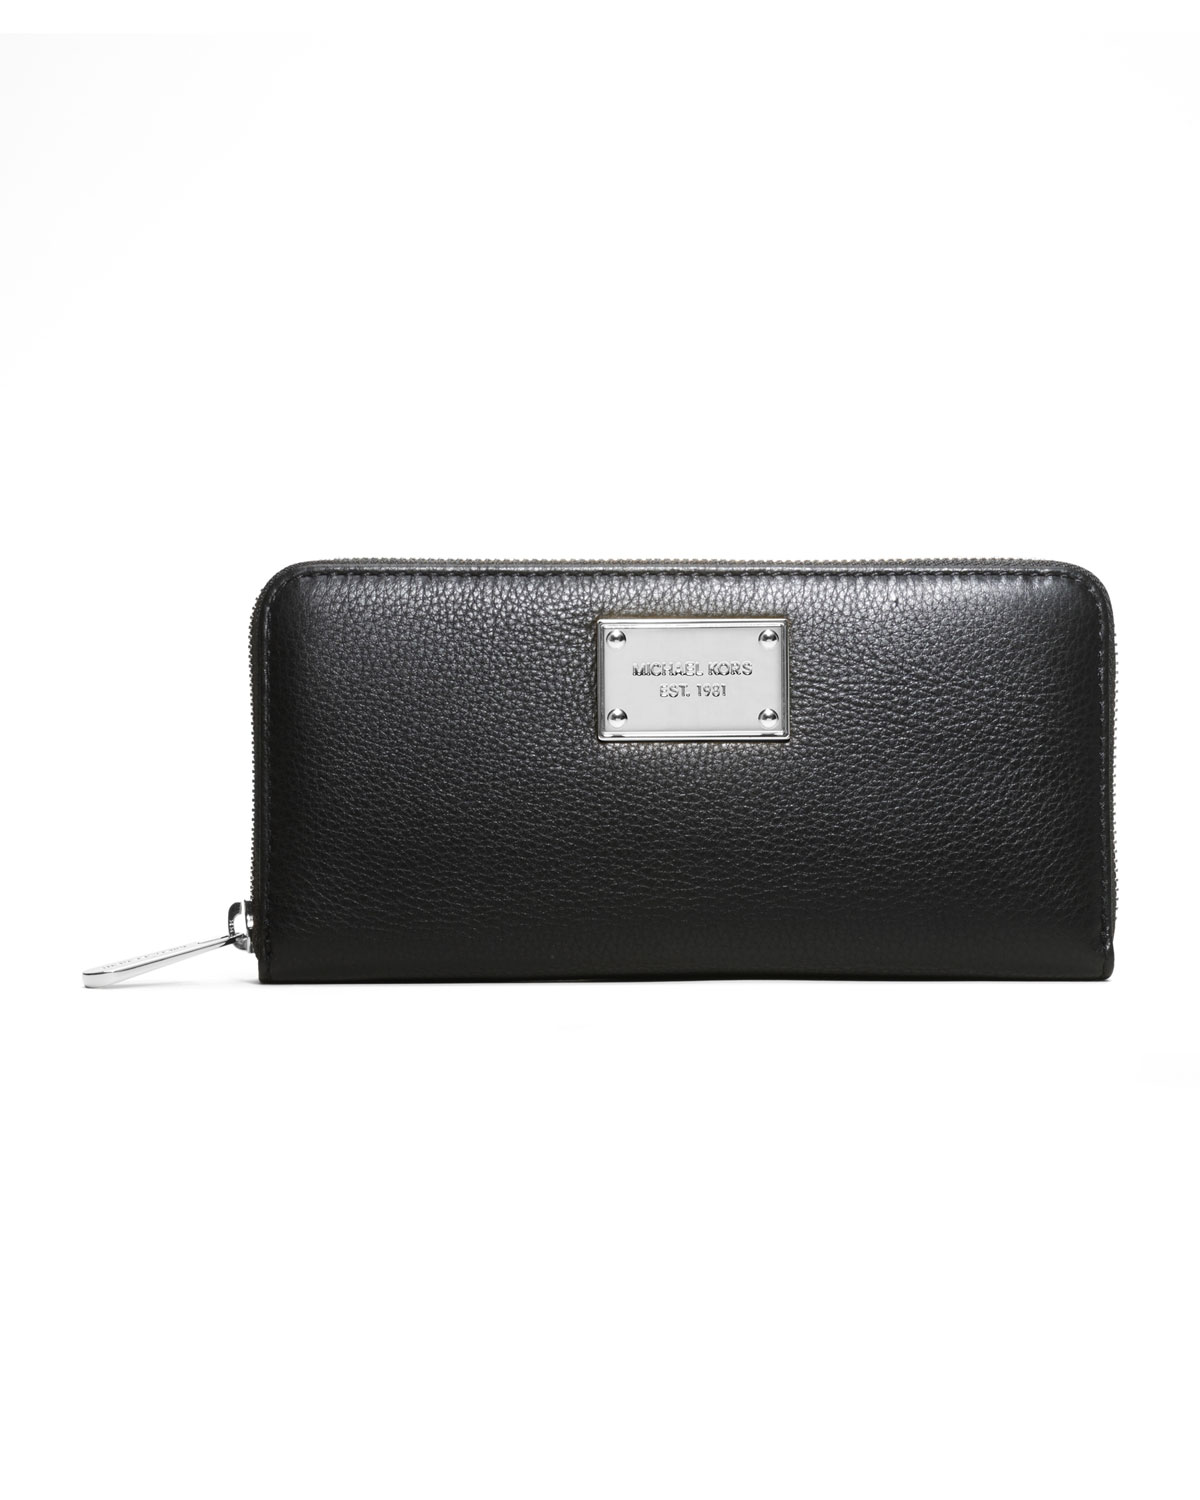 59b54e8ce6cf Black Pebbled Leather Wallet Michael Kors | Stanford Center for ...